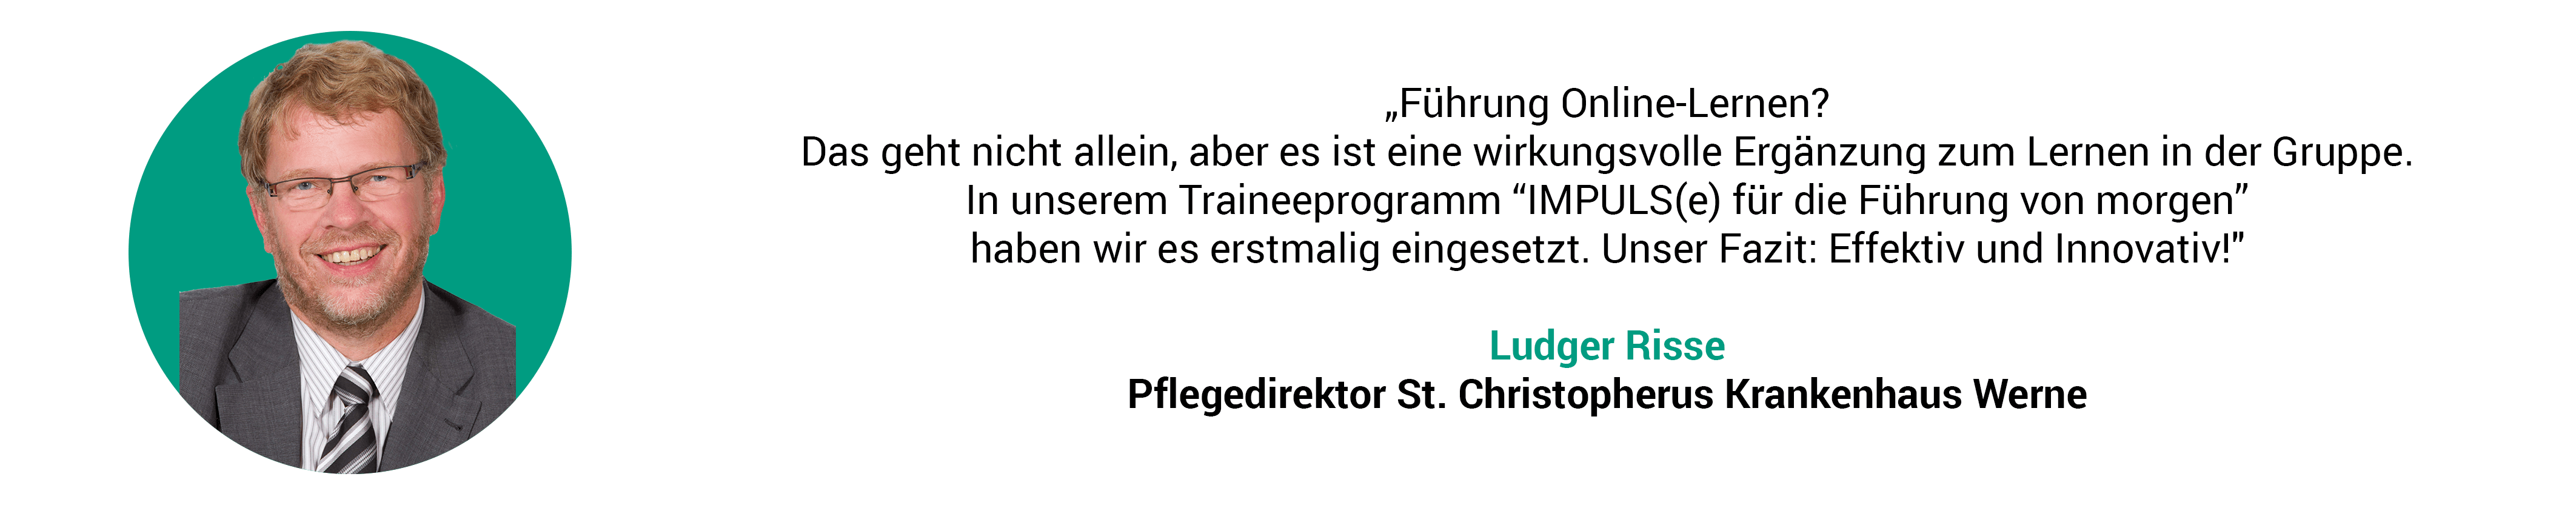 Referenz Ludger Risse